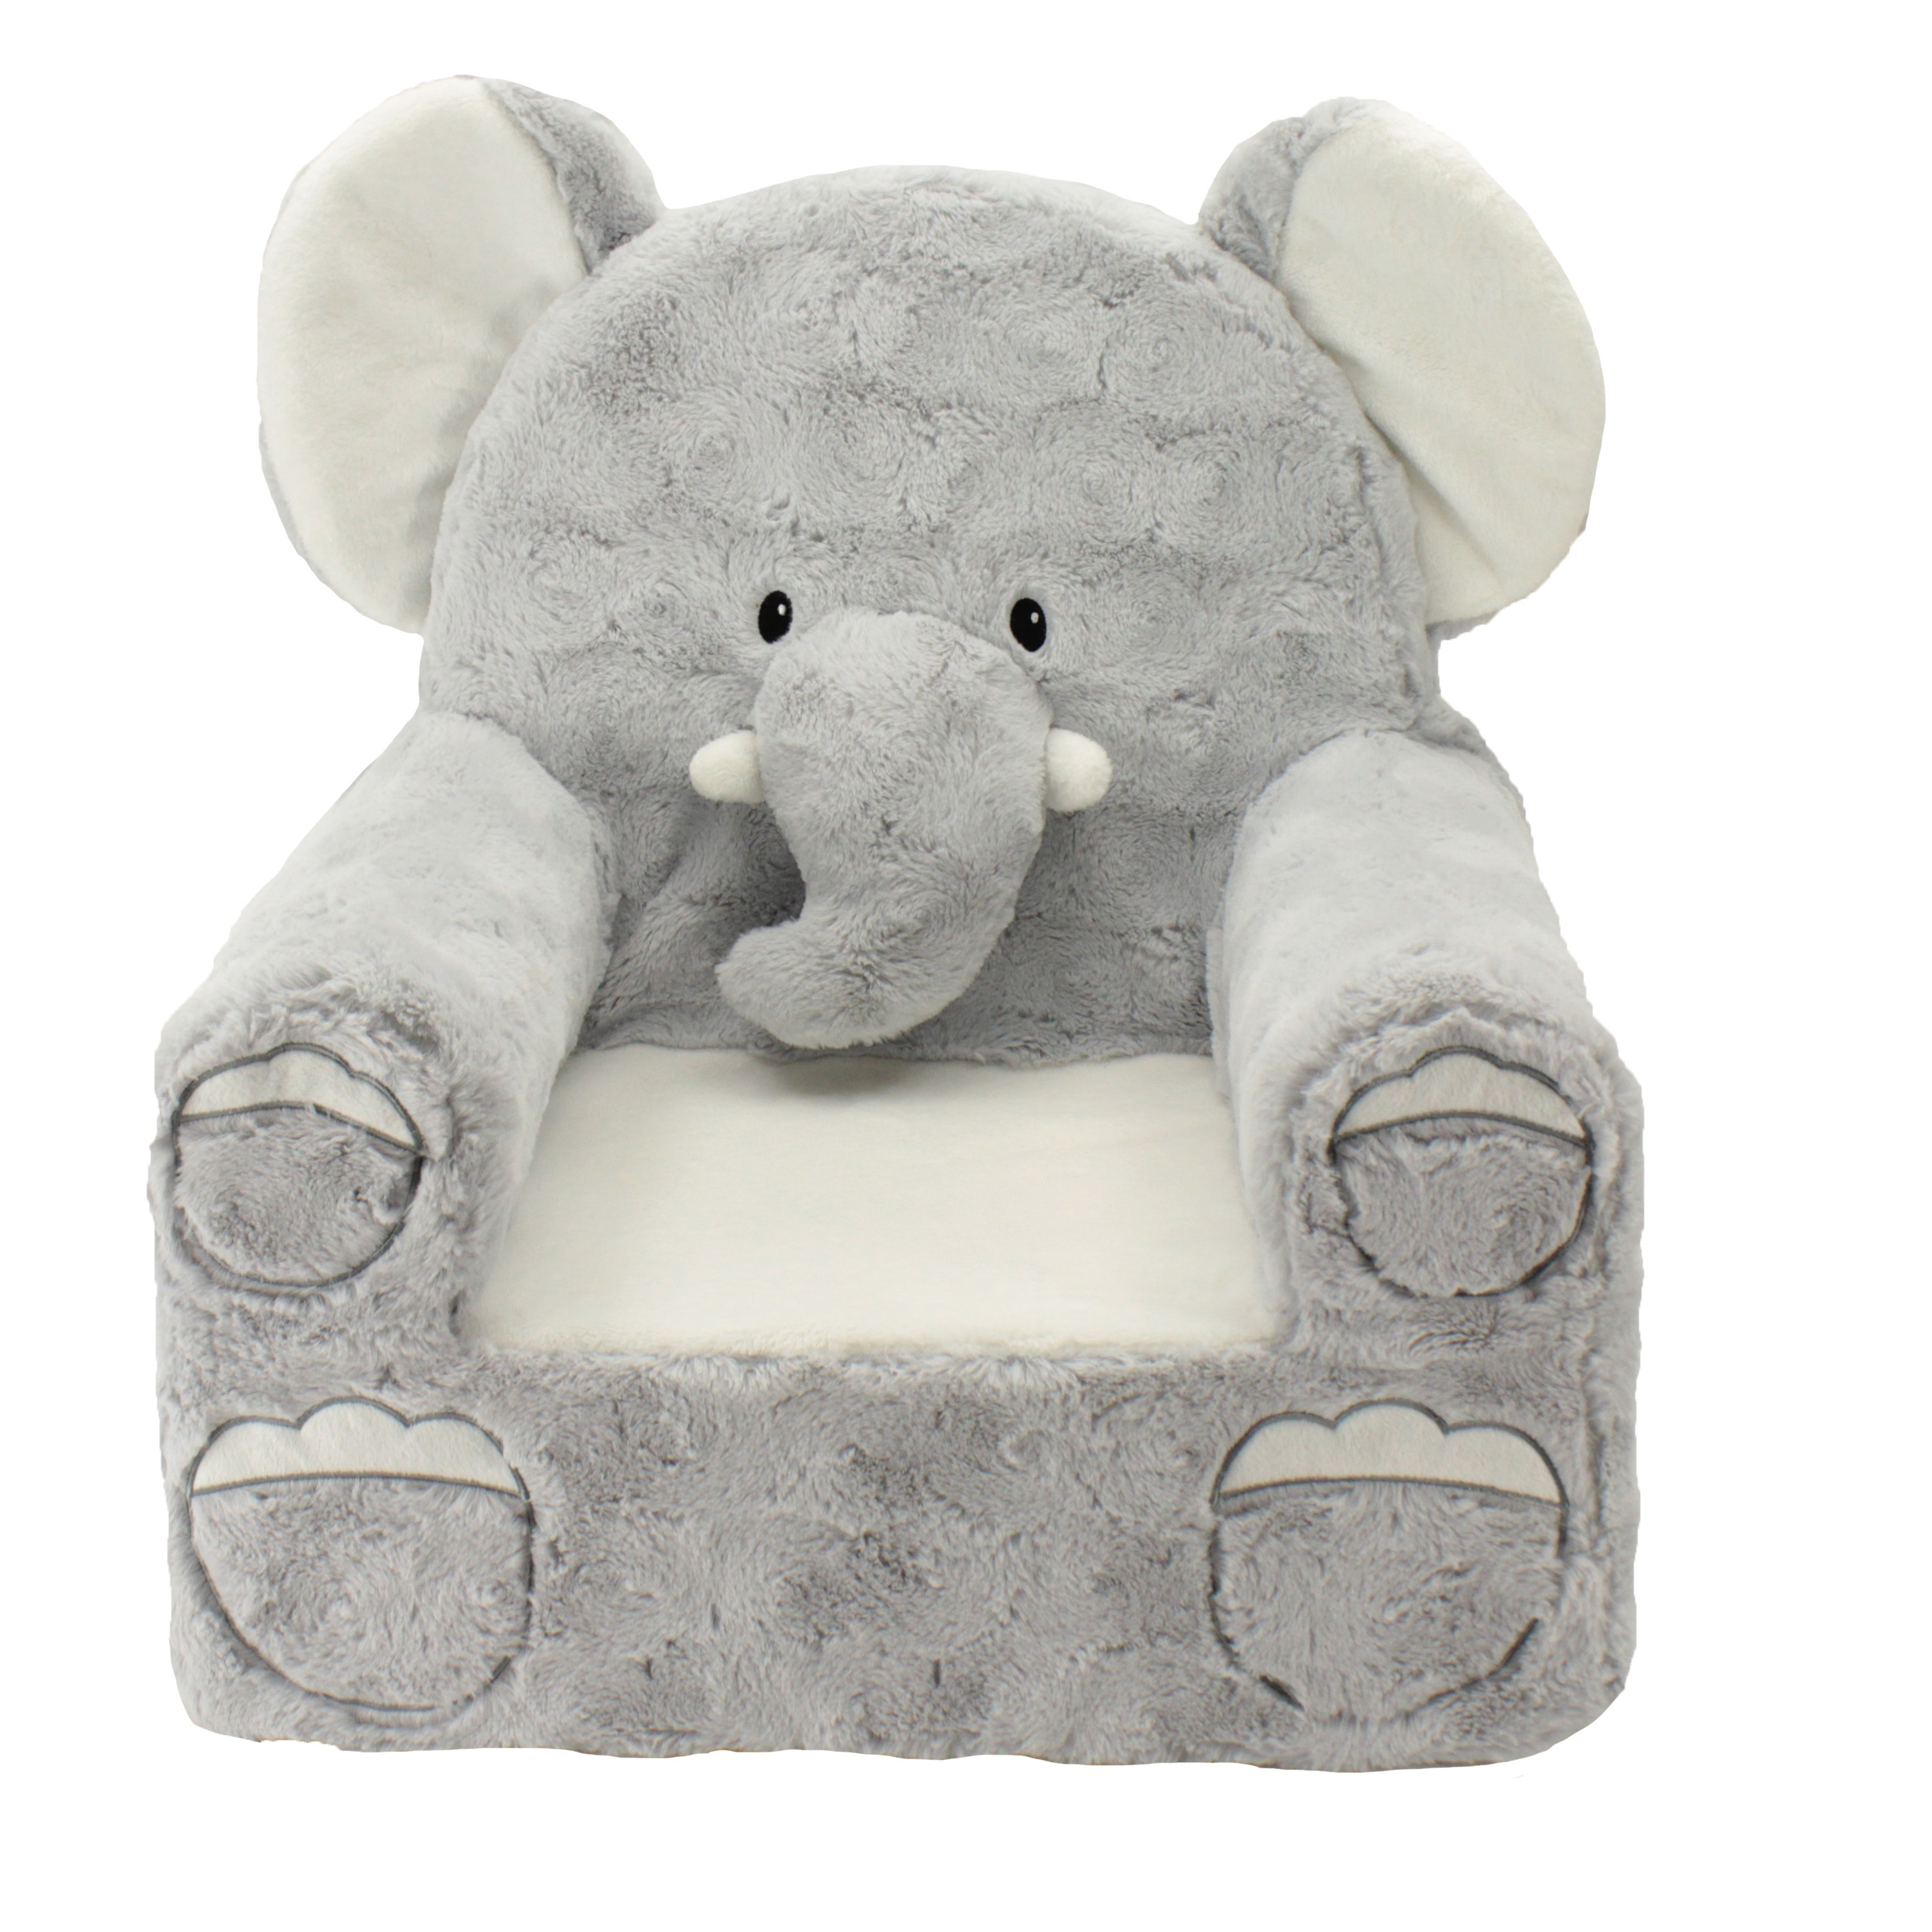 SWEET SEATS KIDS CHAIR ELEPHANT